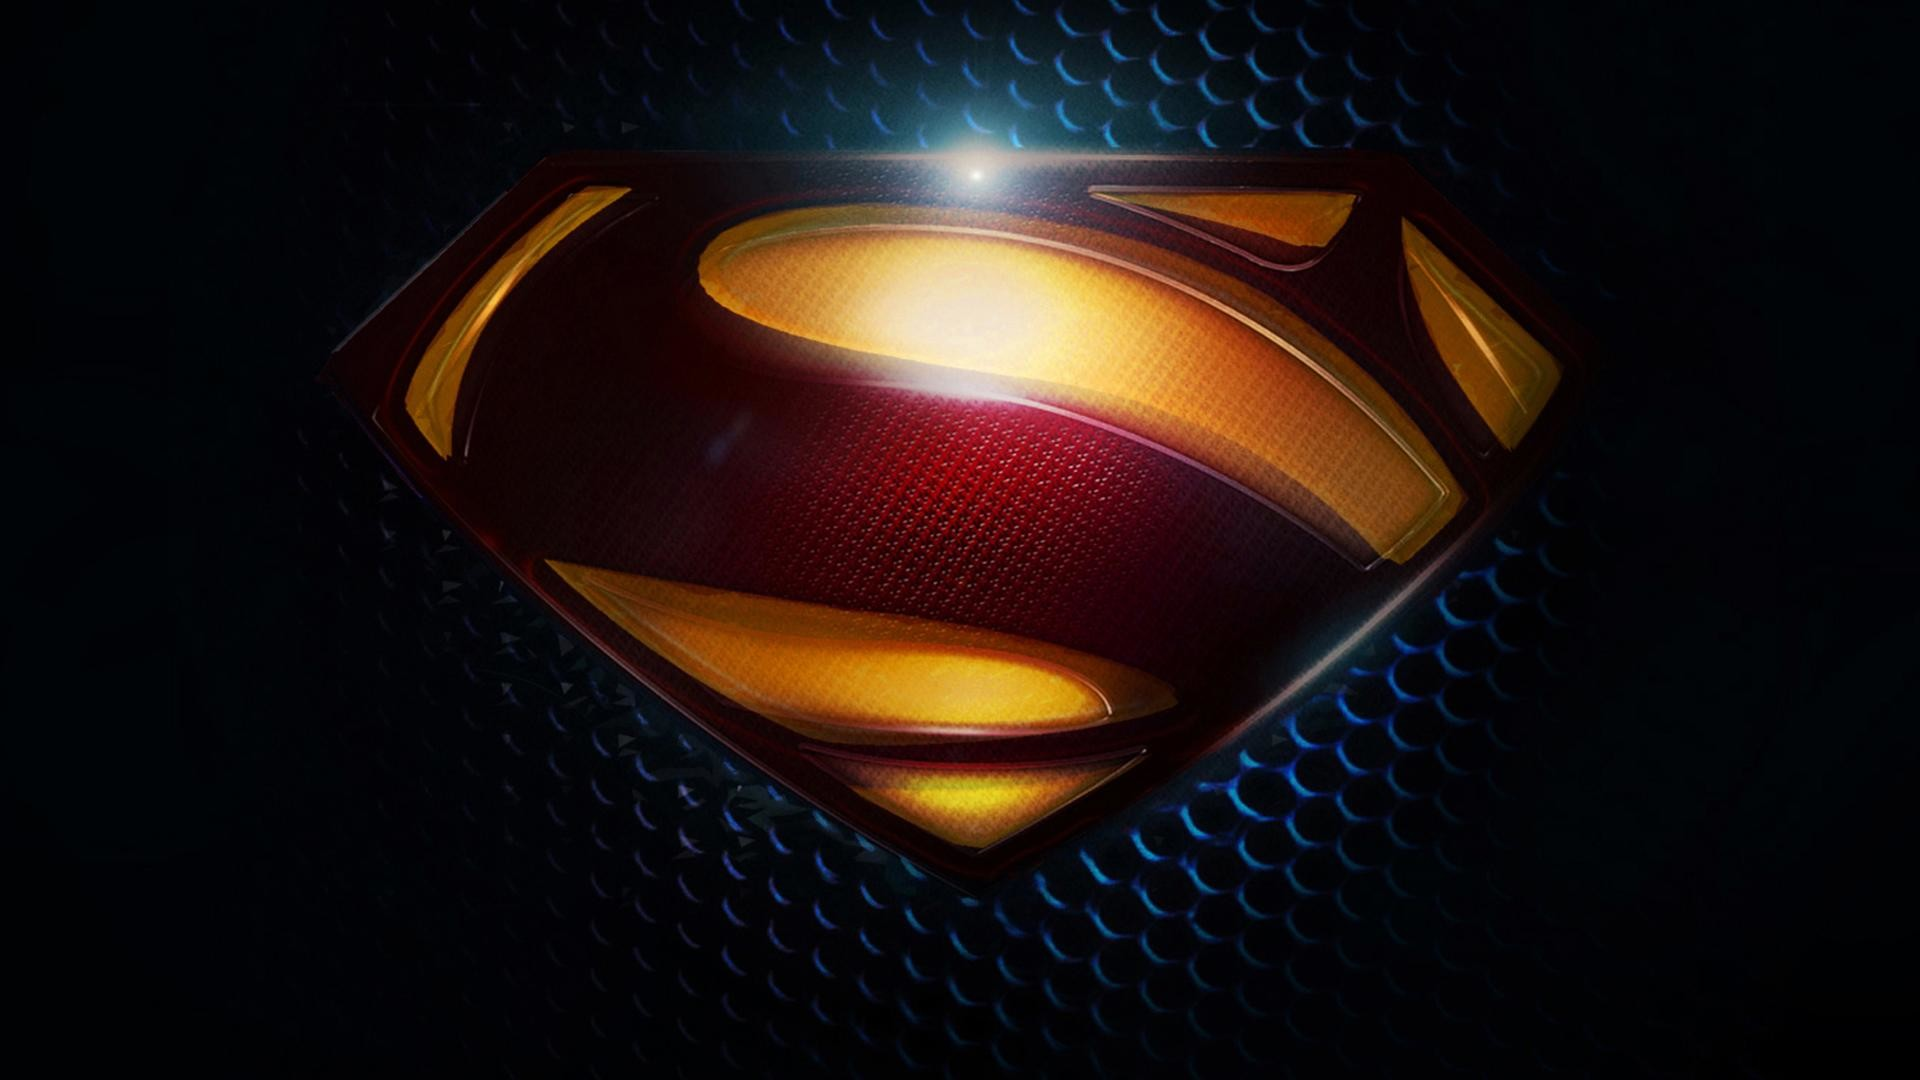 Superman Logo Wallpapers, High Resolution Wallpapers